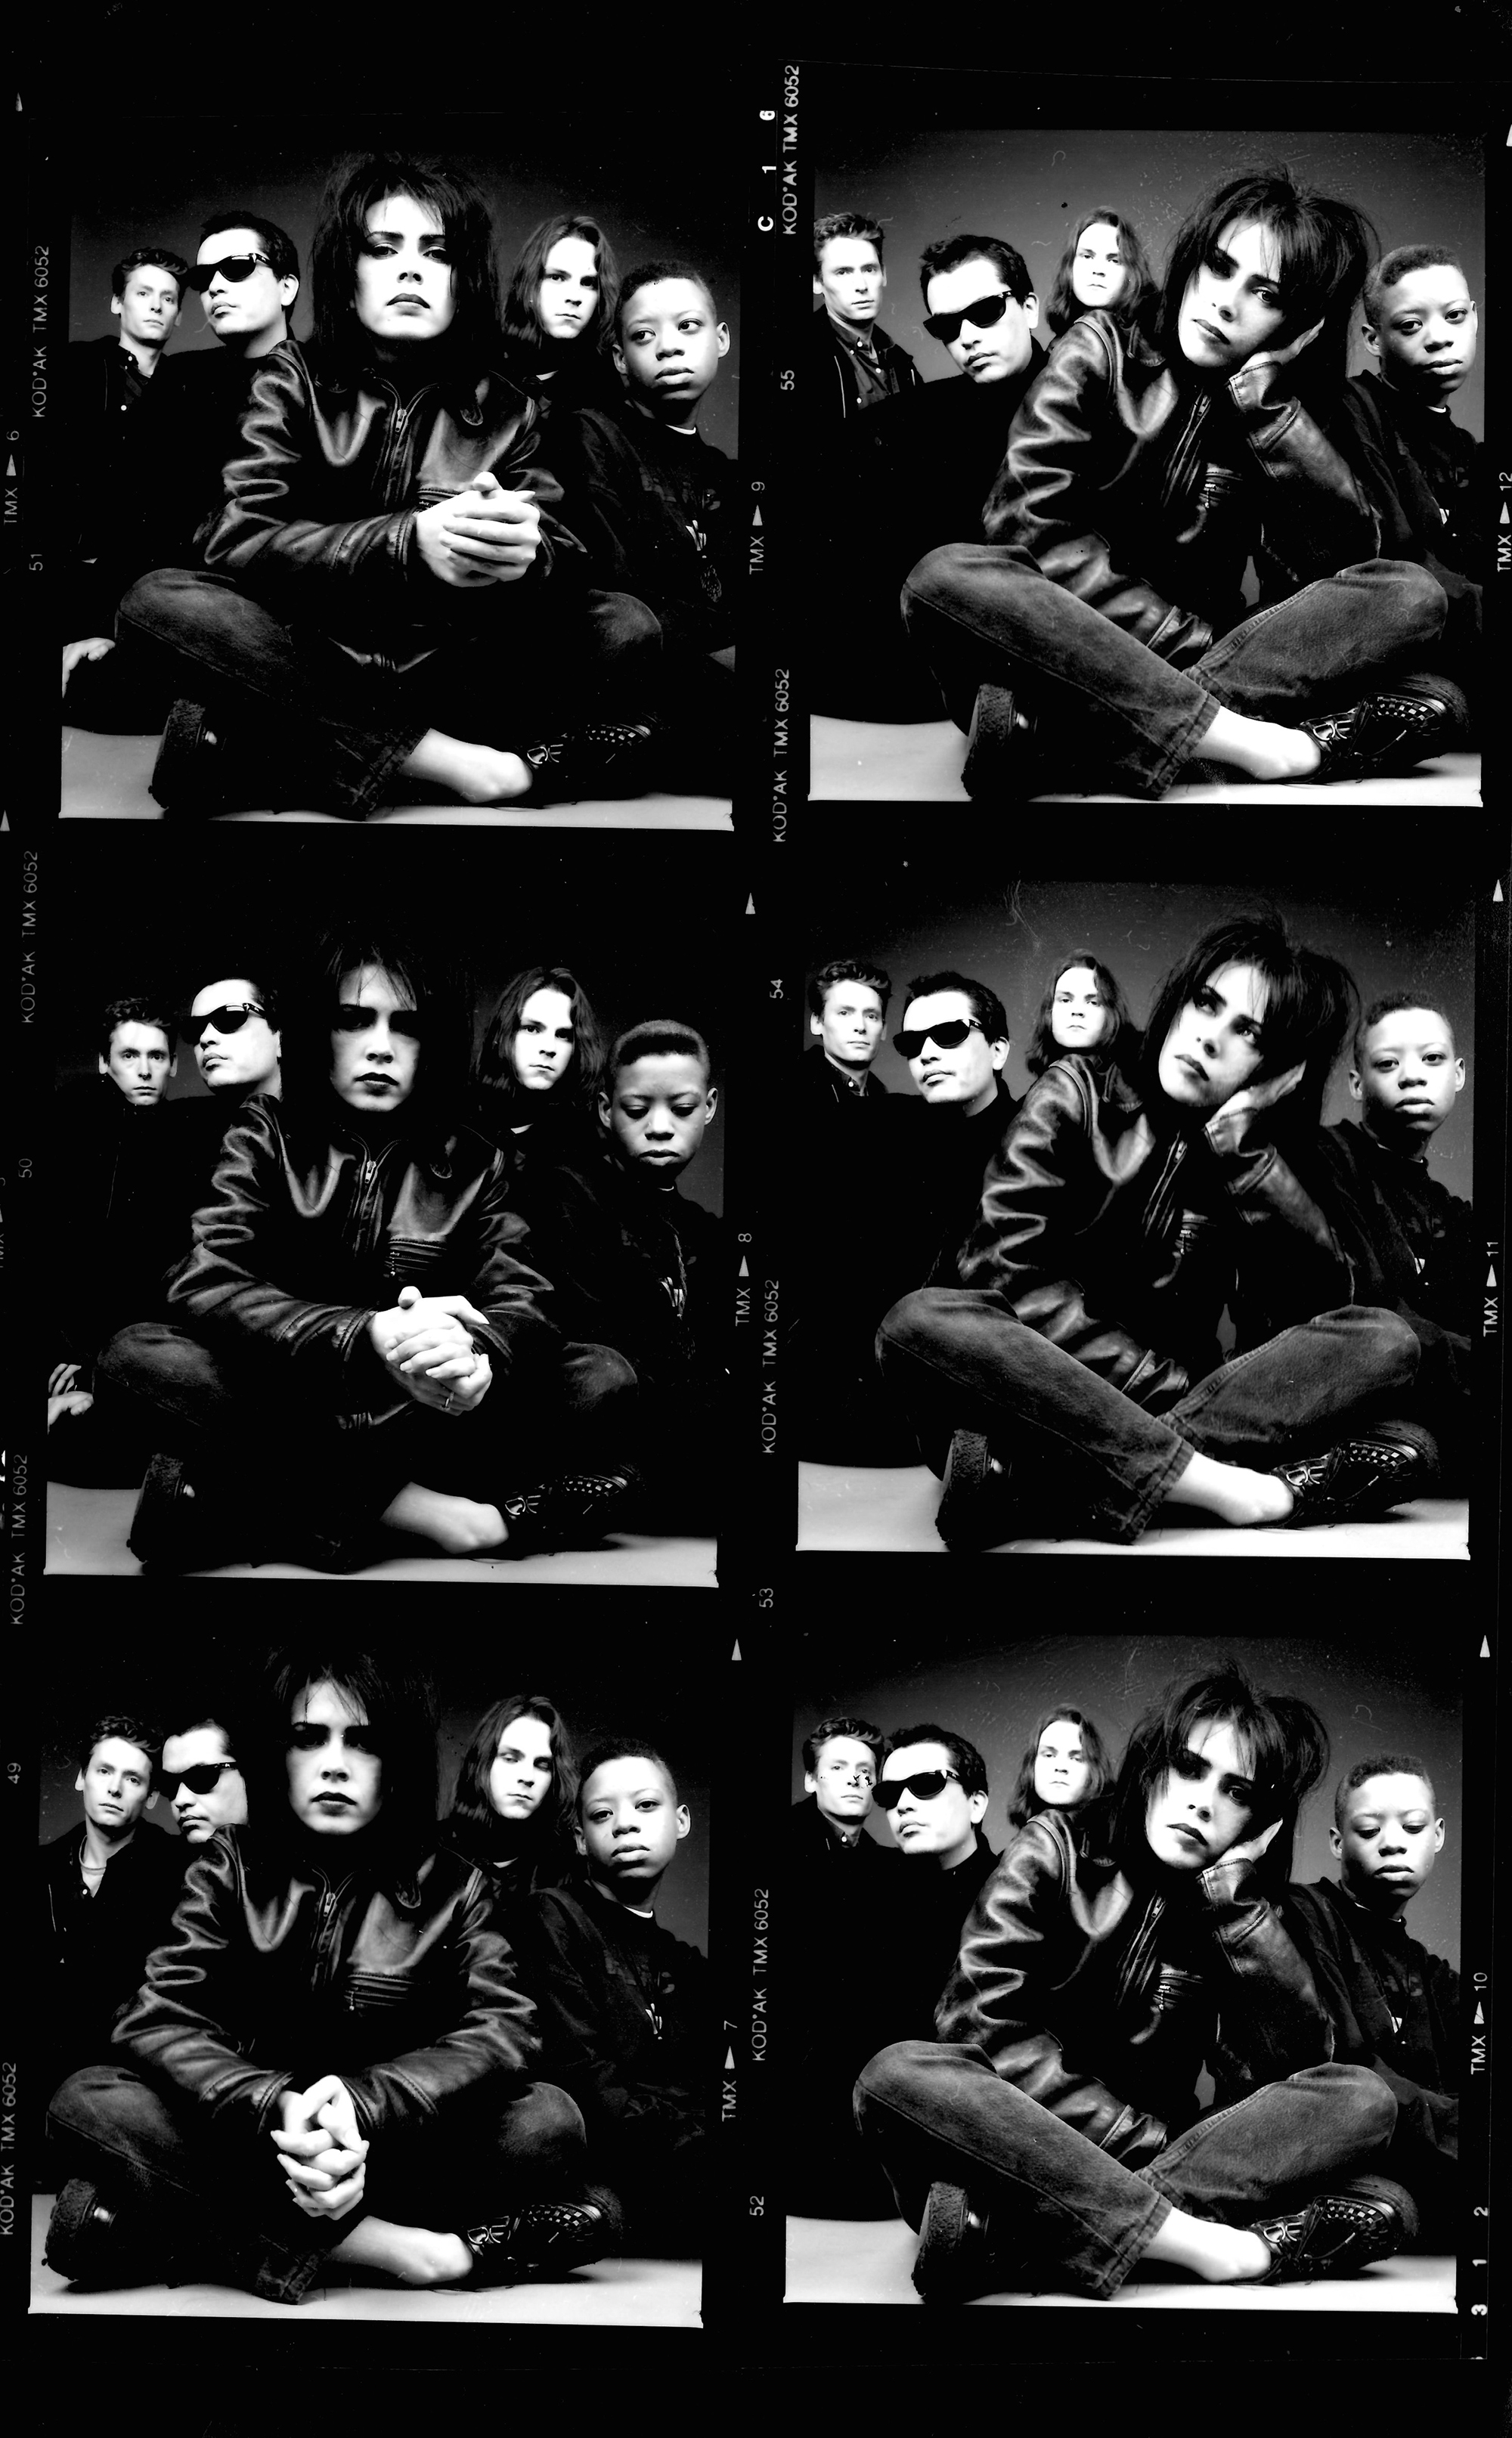 Curve band (1990's) - Image courtesy of Dean Garcia for Homesick Magazine Issue #2   www.curve.co.uk